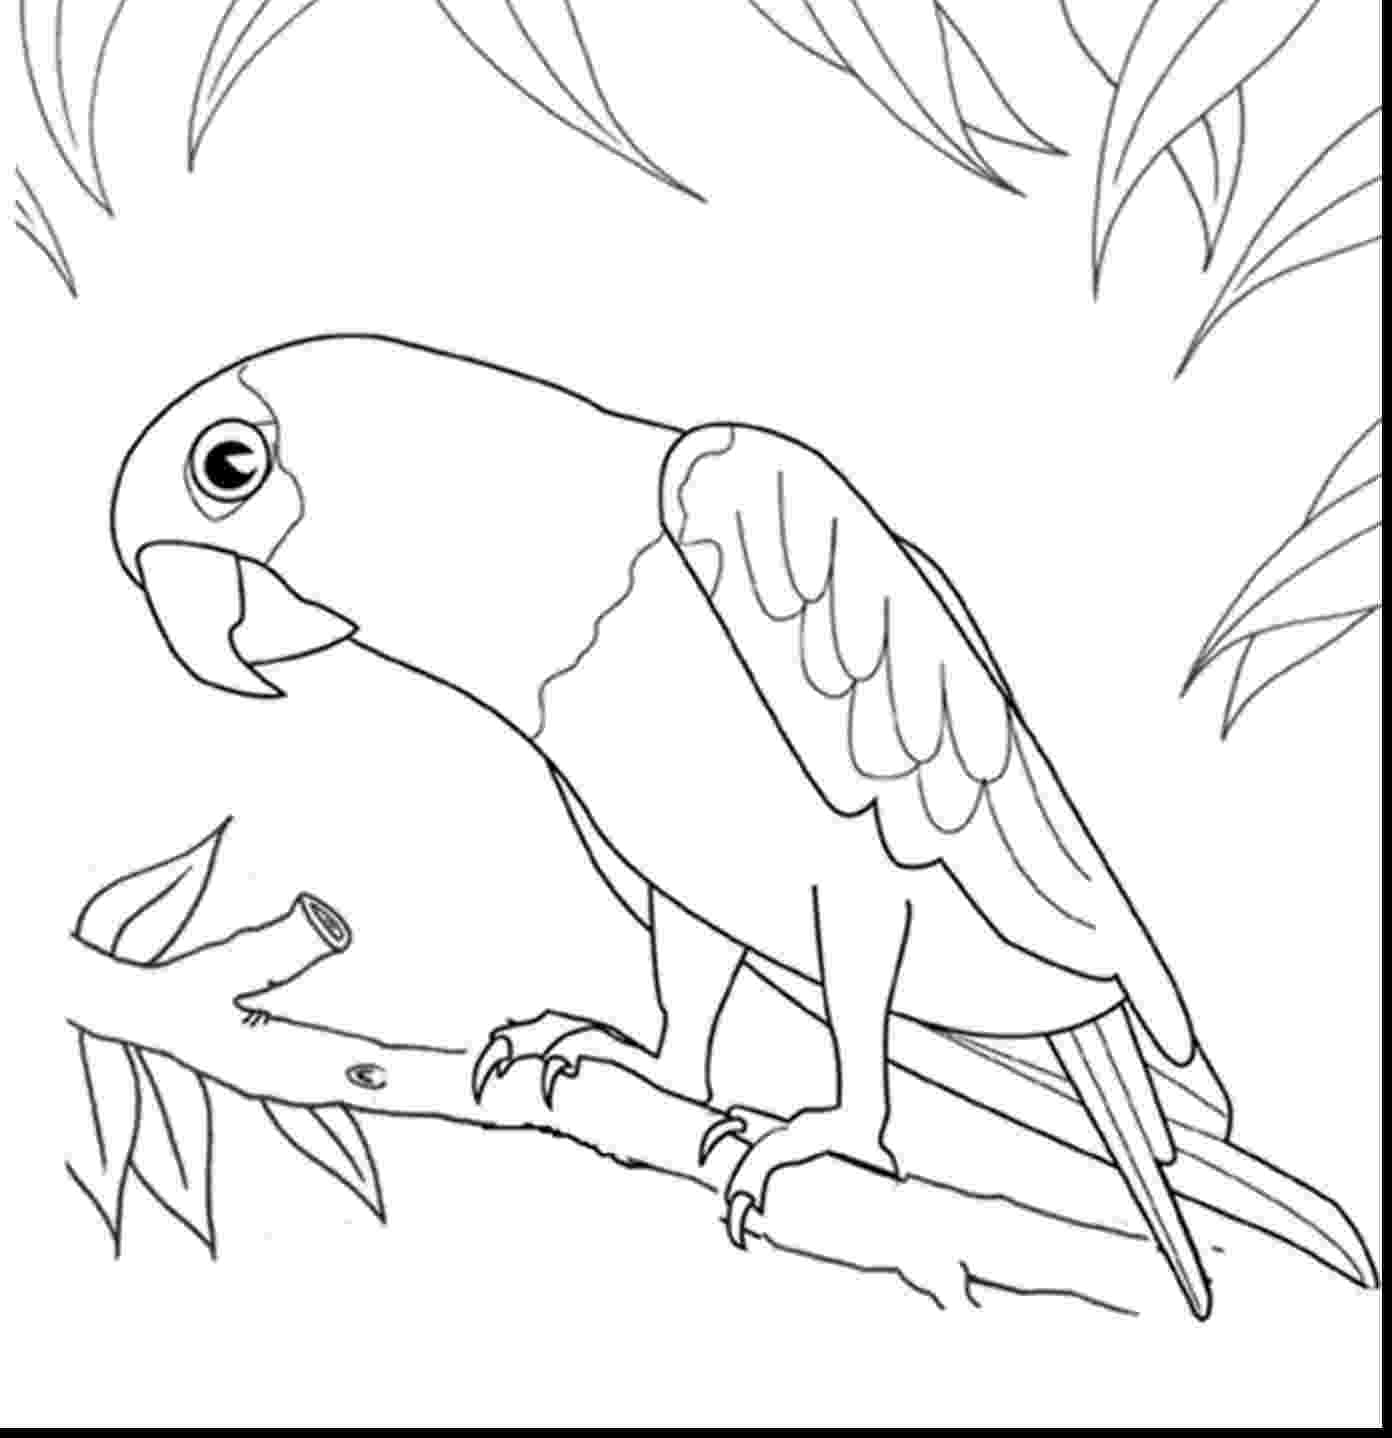 cockatiel coloring pages parrot bird drawing at getdrawings free download cockatiel coloring pages